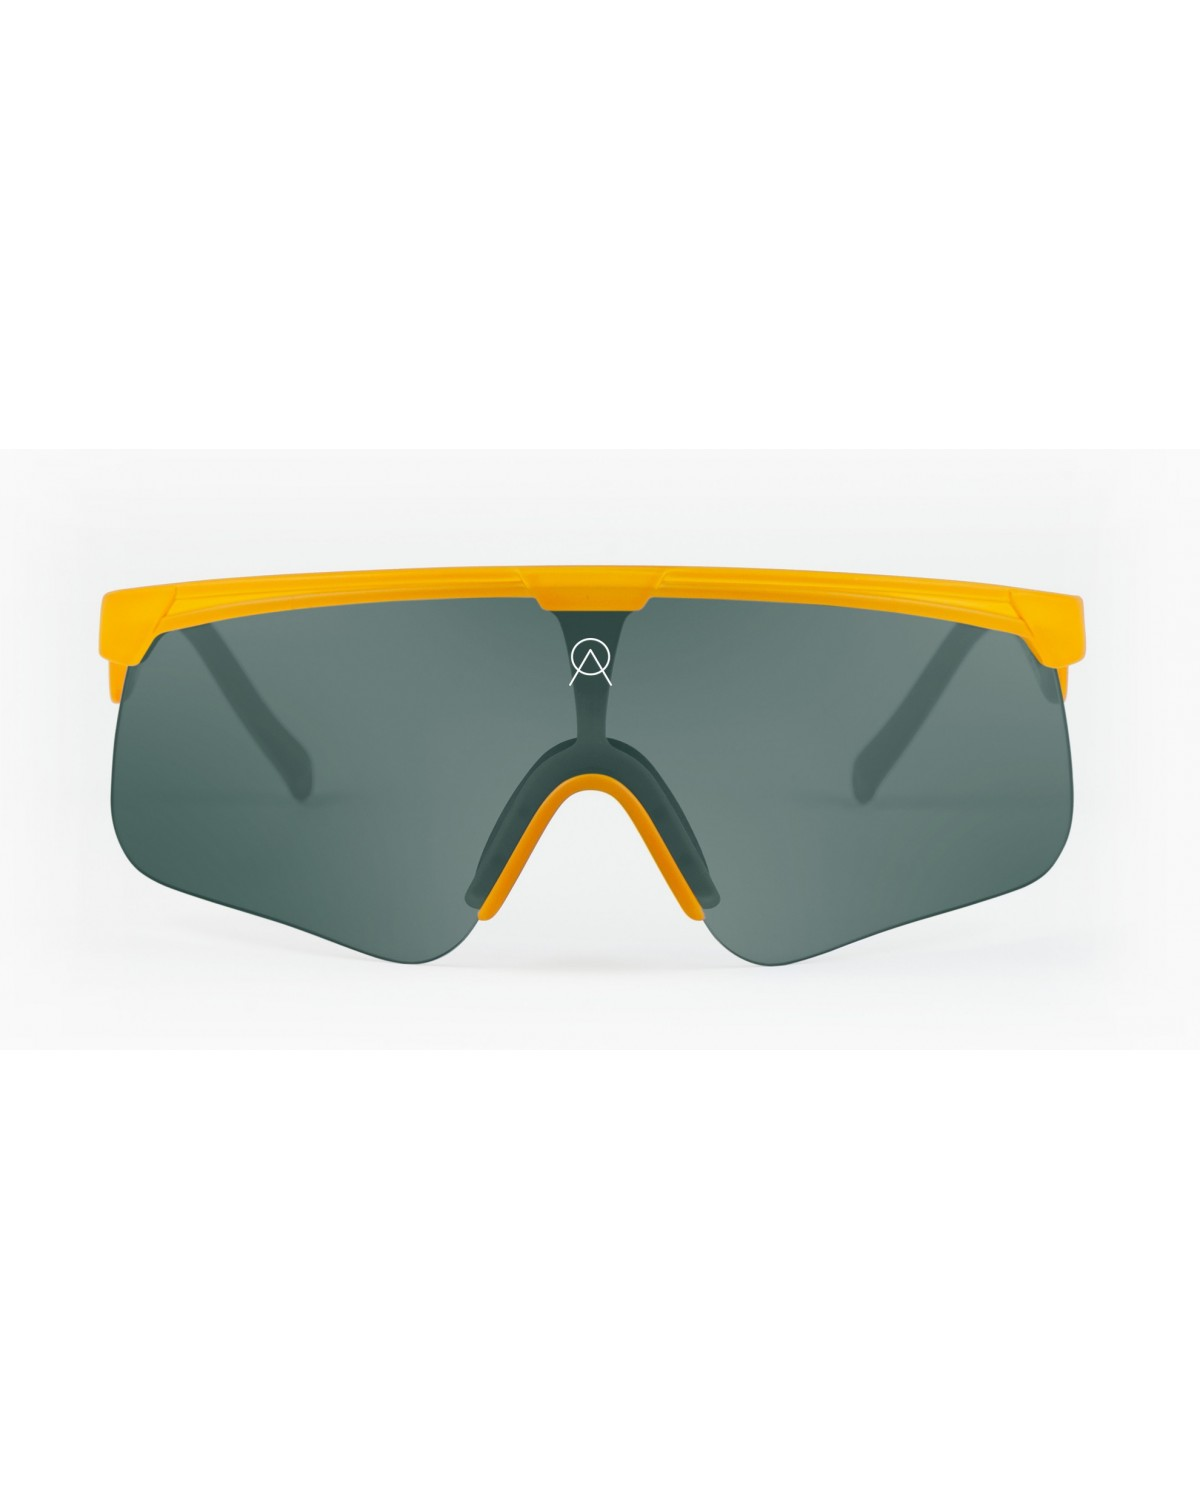 Alba Optics Delta Hay Yellow Retro Radbrille